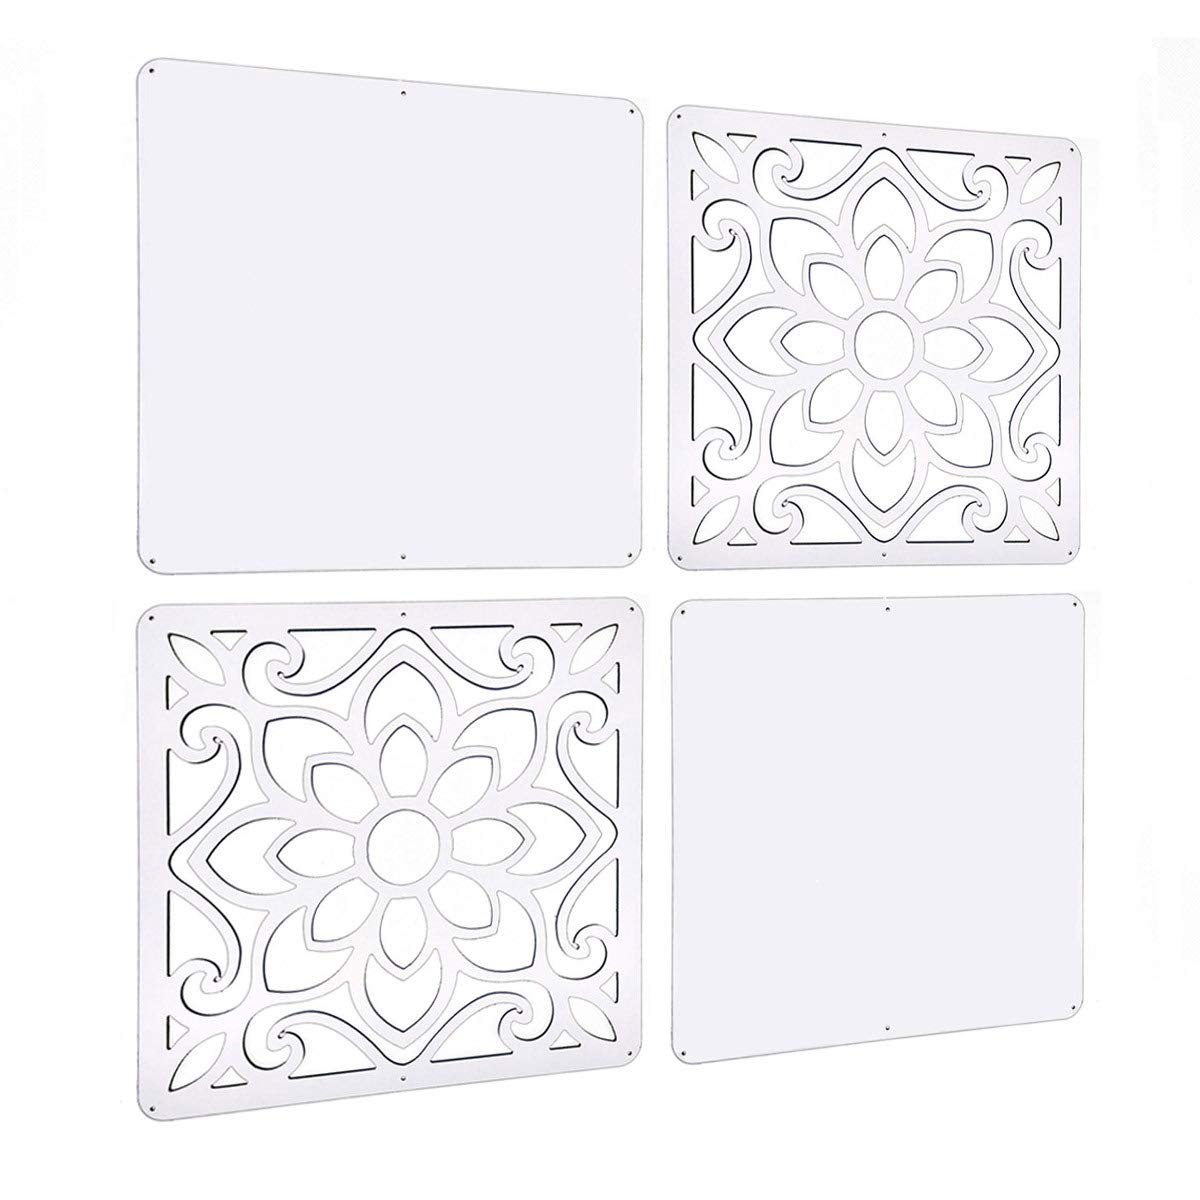 Lchen Hanging Room Divider, White Wood-Plastic Board&Cut Screen Panel for Living Room and Beding Room (BTT-M4L,15.3''X15.3'') by Lchen (Image #1)